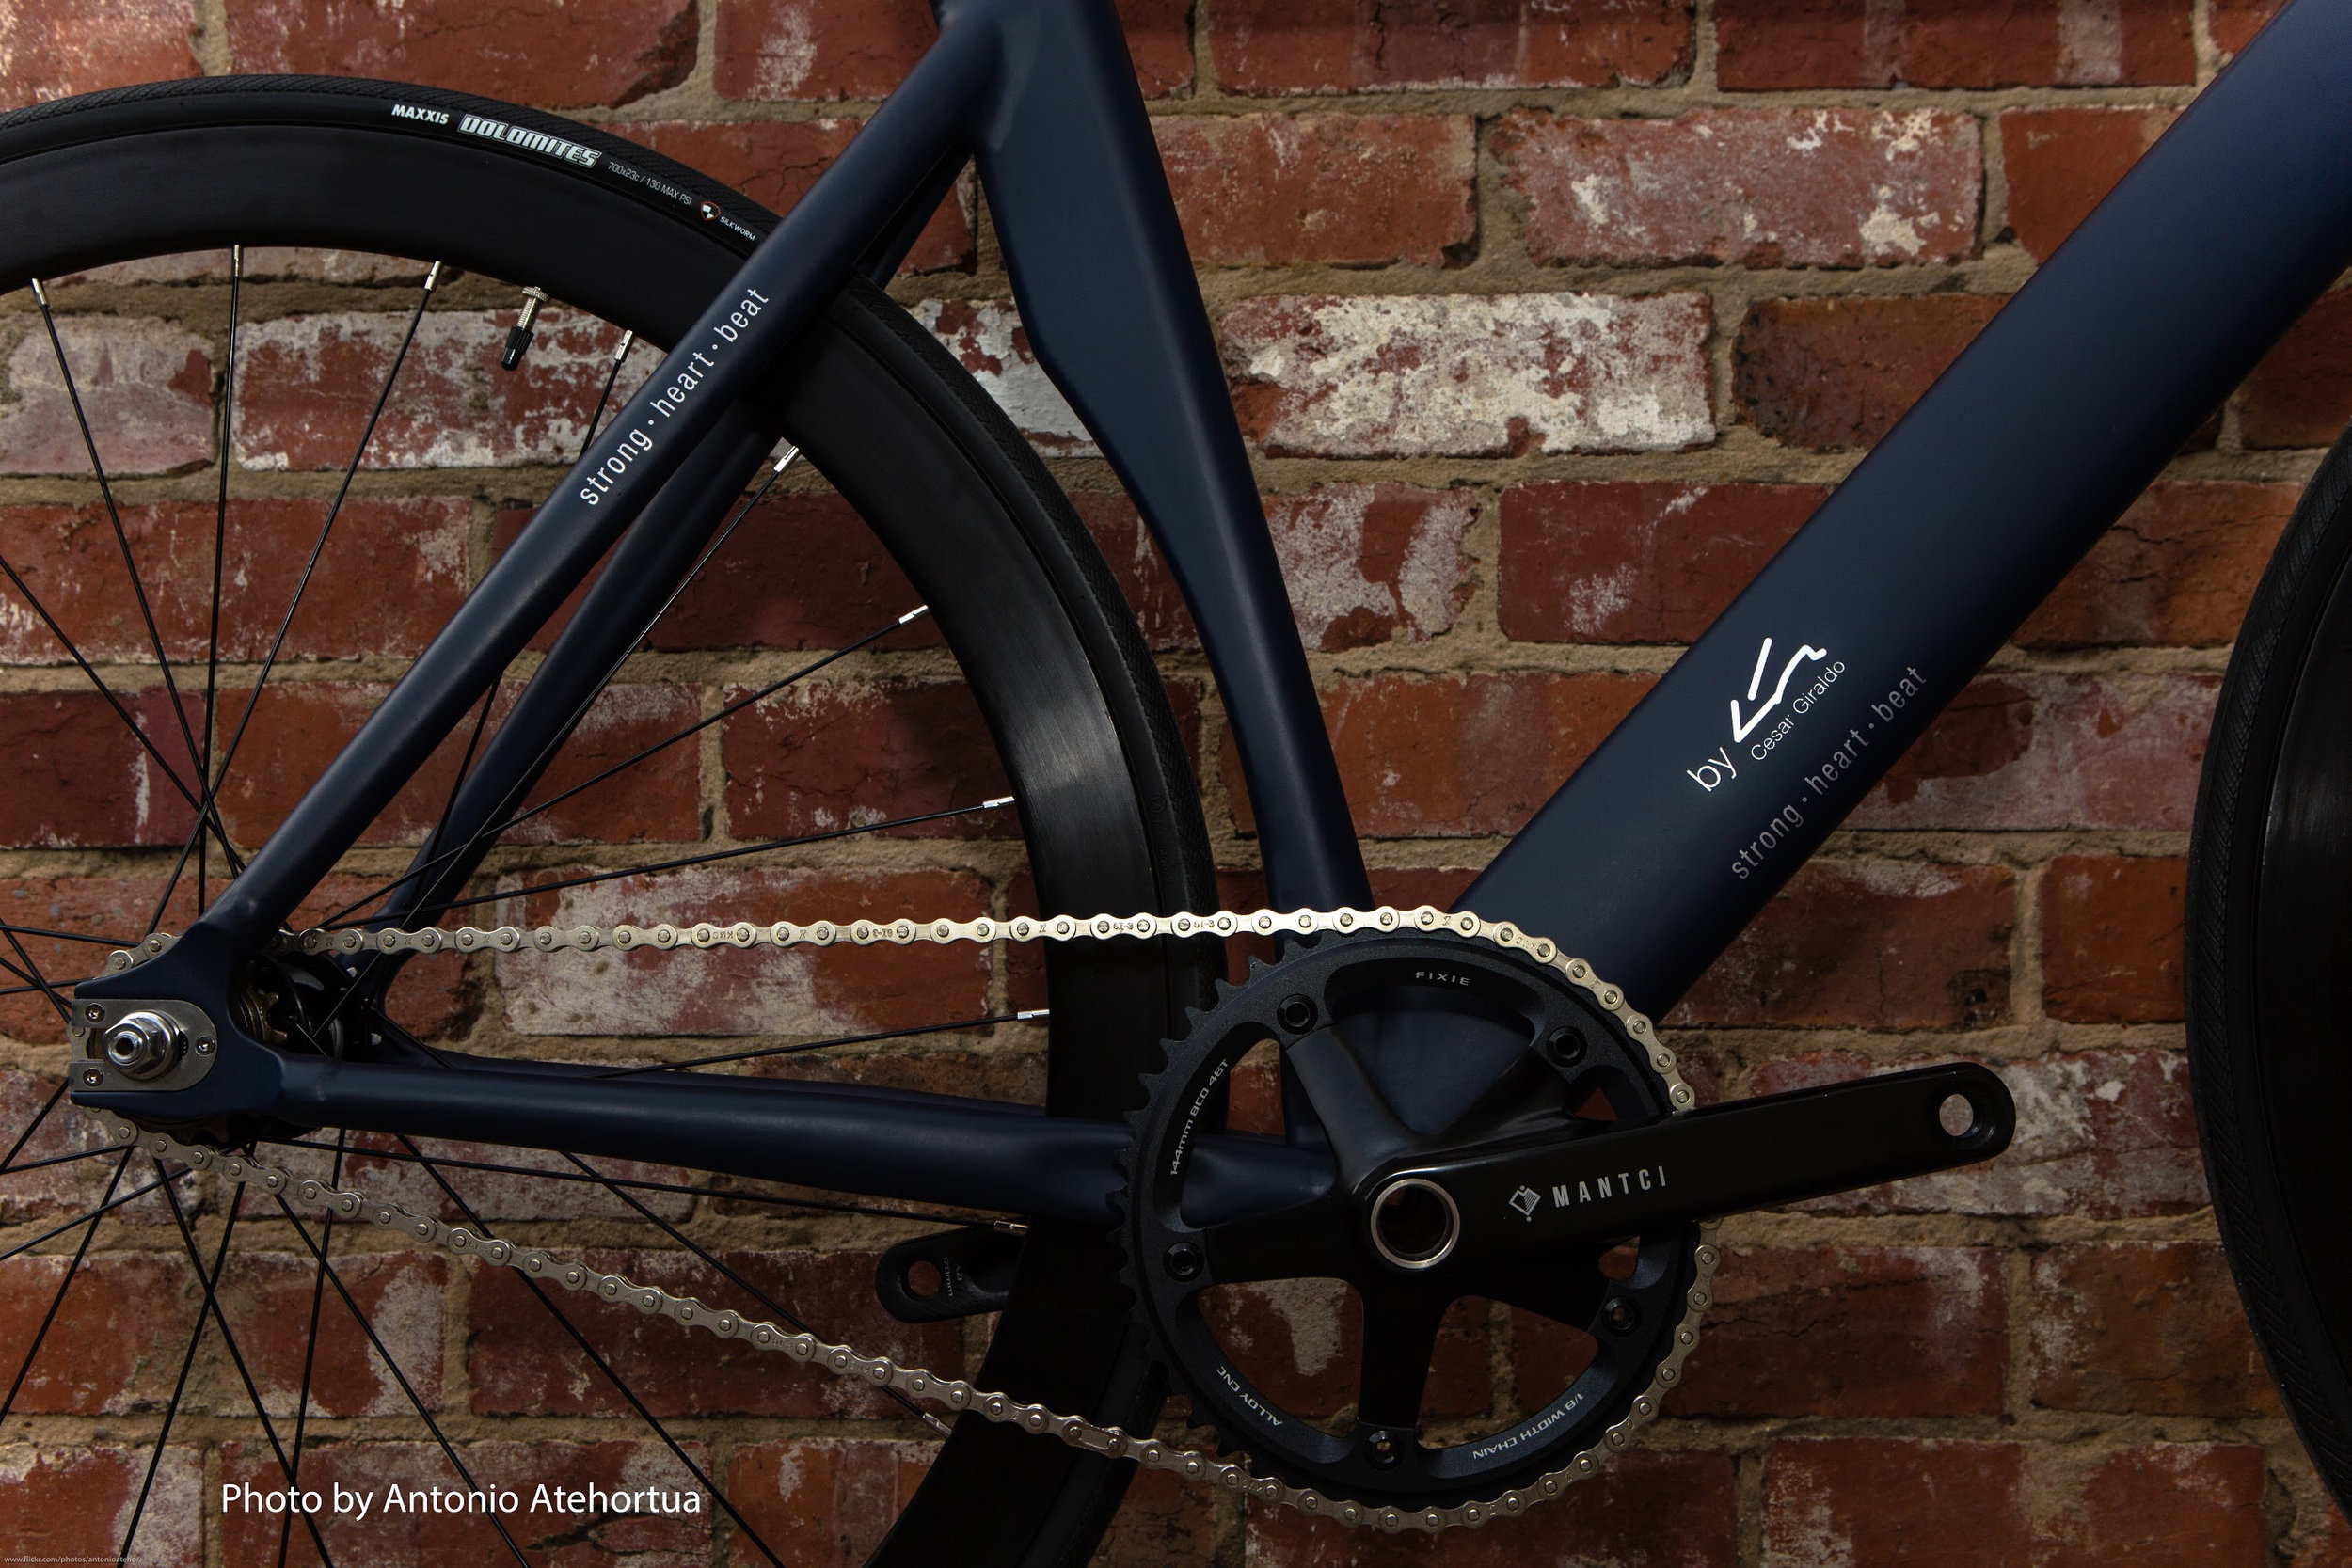 MANTCI - In 2016, along with other leading architects, designers and taste makers, I was asked to add creativity and style to a Schwinn bicycle which benefited the Los Angeles Ronald McDonald House. I was honored to participate in a great cause that helped the LARMH's mission of providing comfort, care and support to caregivers of seriously ill children.